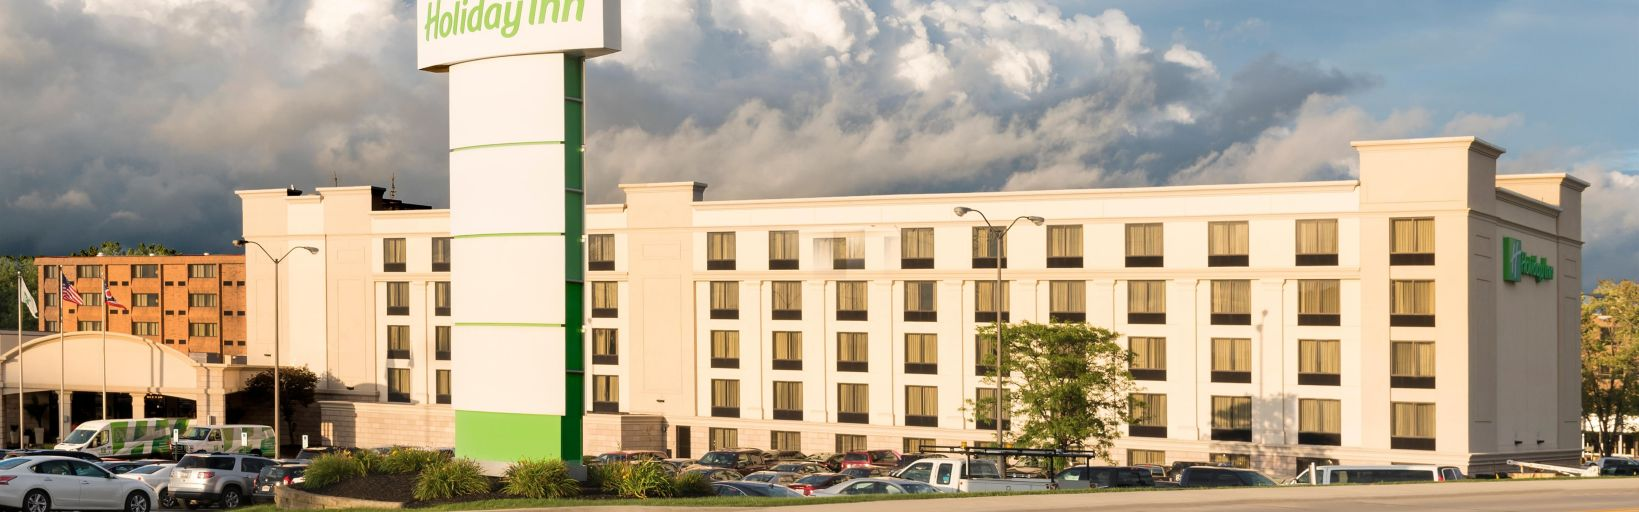 Exterior Feature Welcome To The Holiday Inn Cleveland South Independence